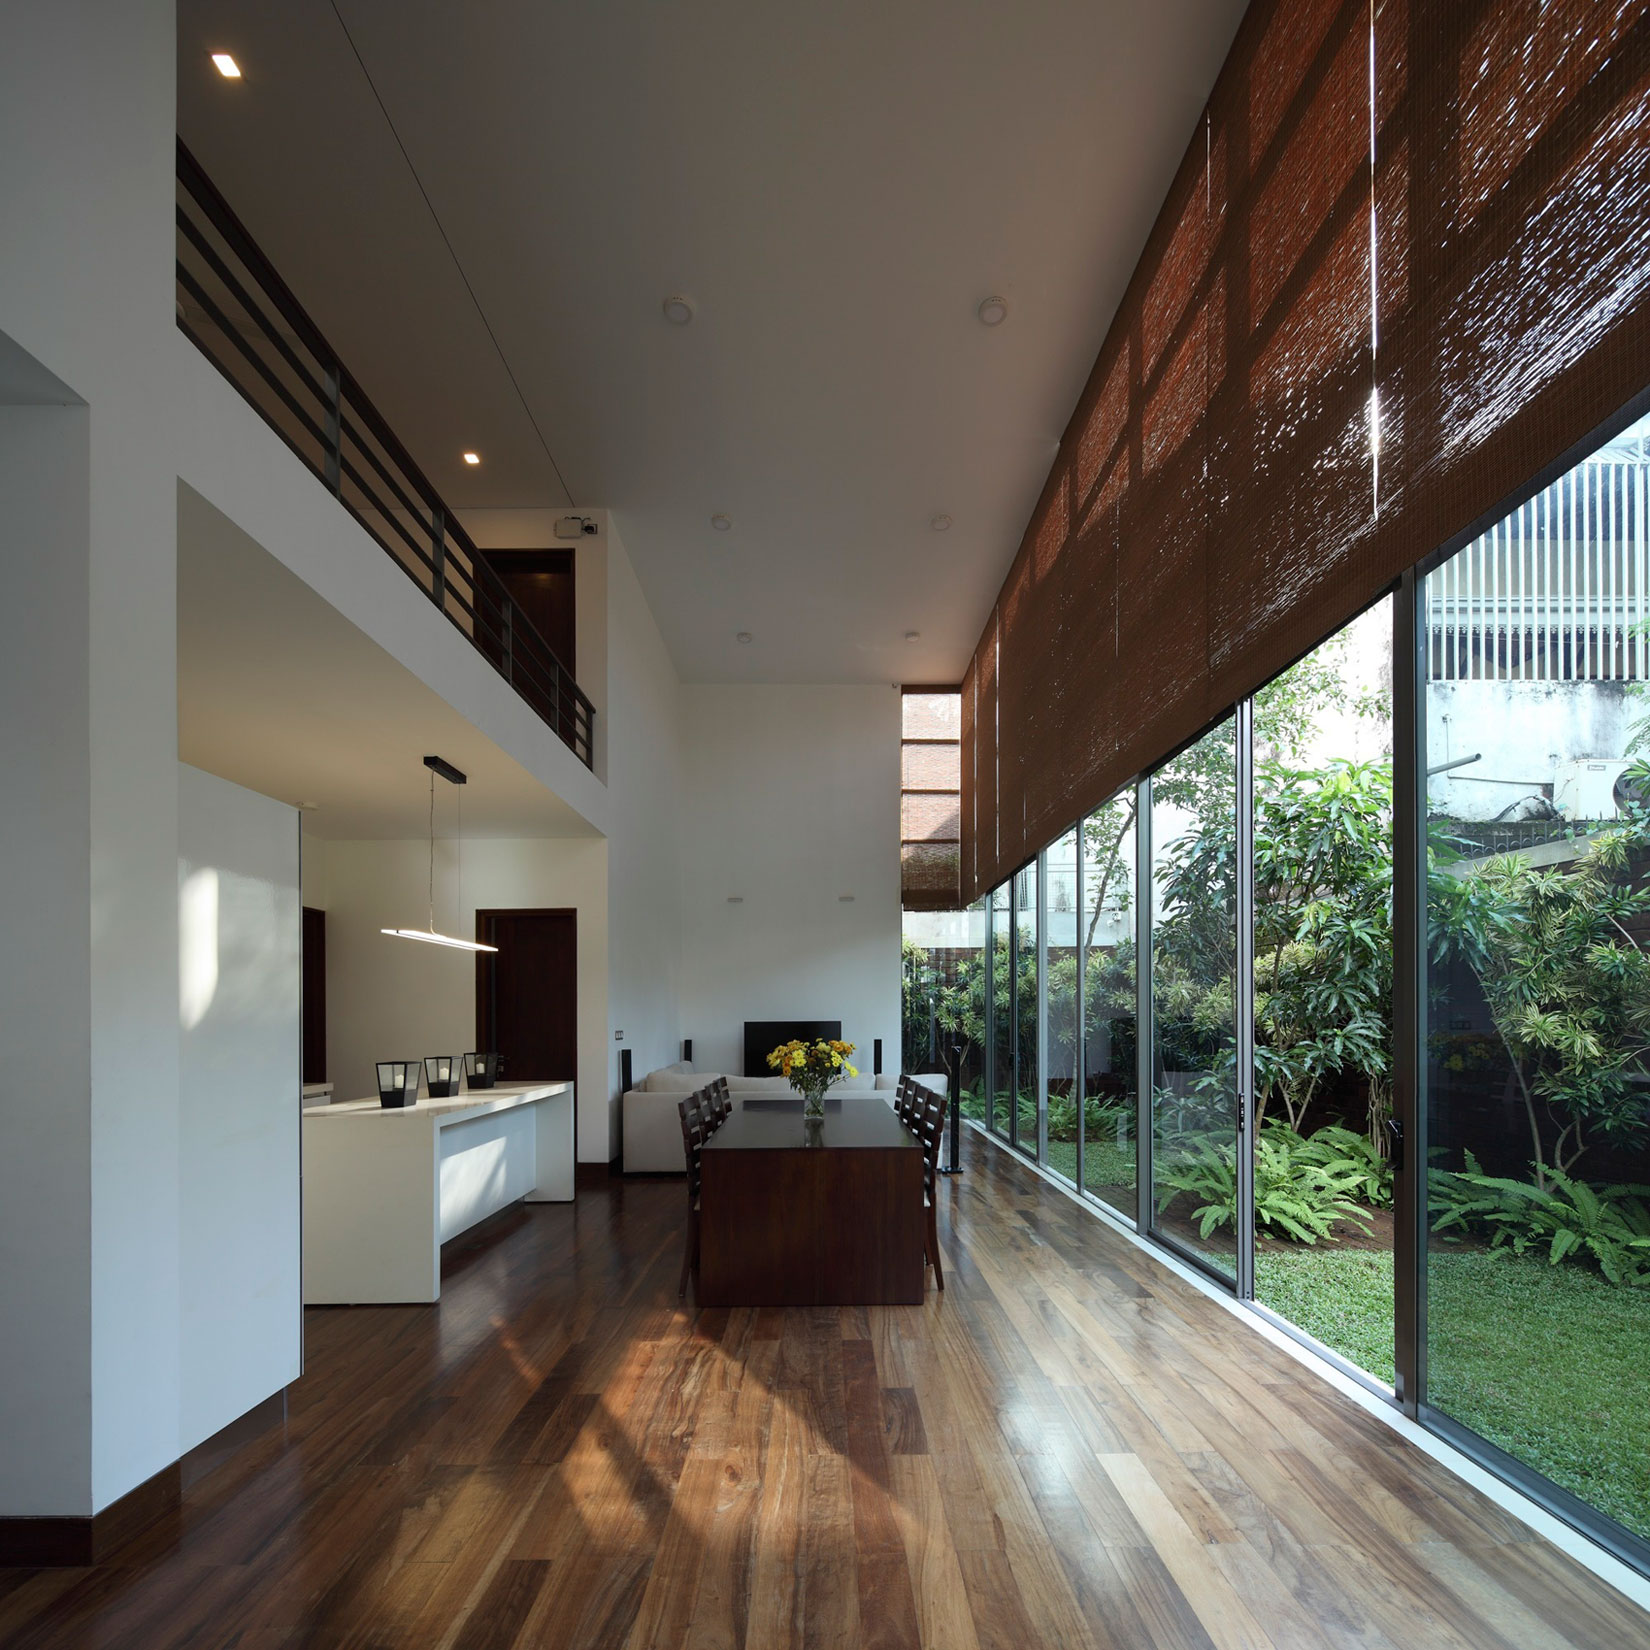 Home Design Ideas Architecture: KWA Architects Design A Contemporary Home In Colombo, Sri